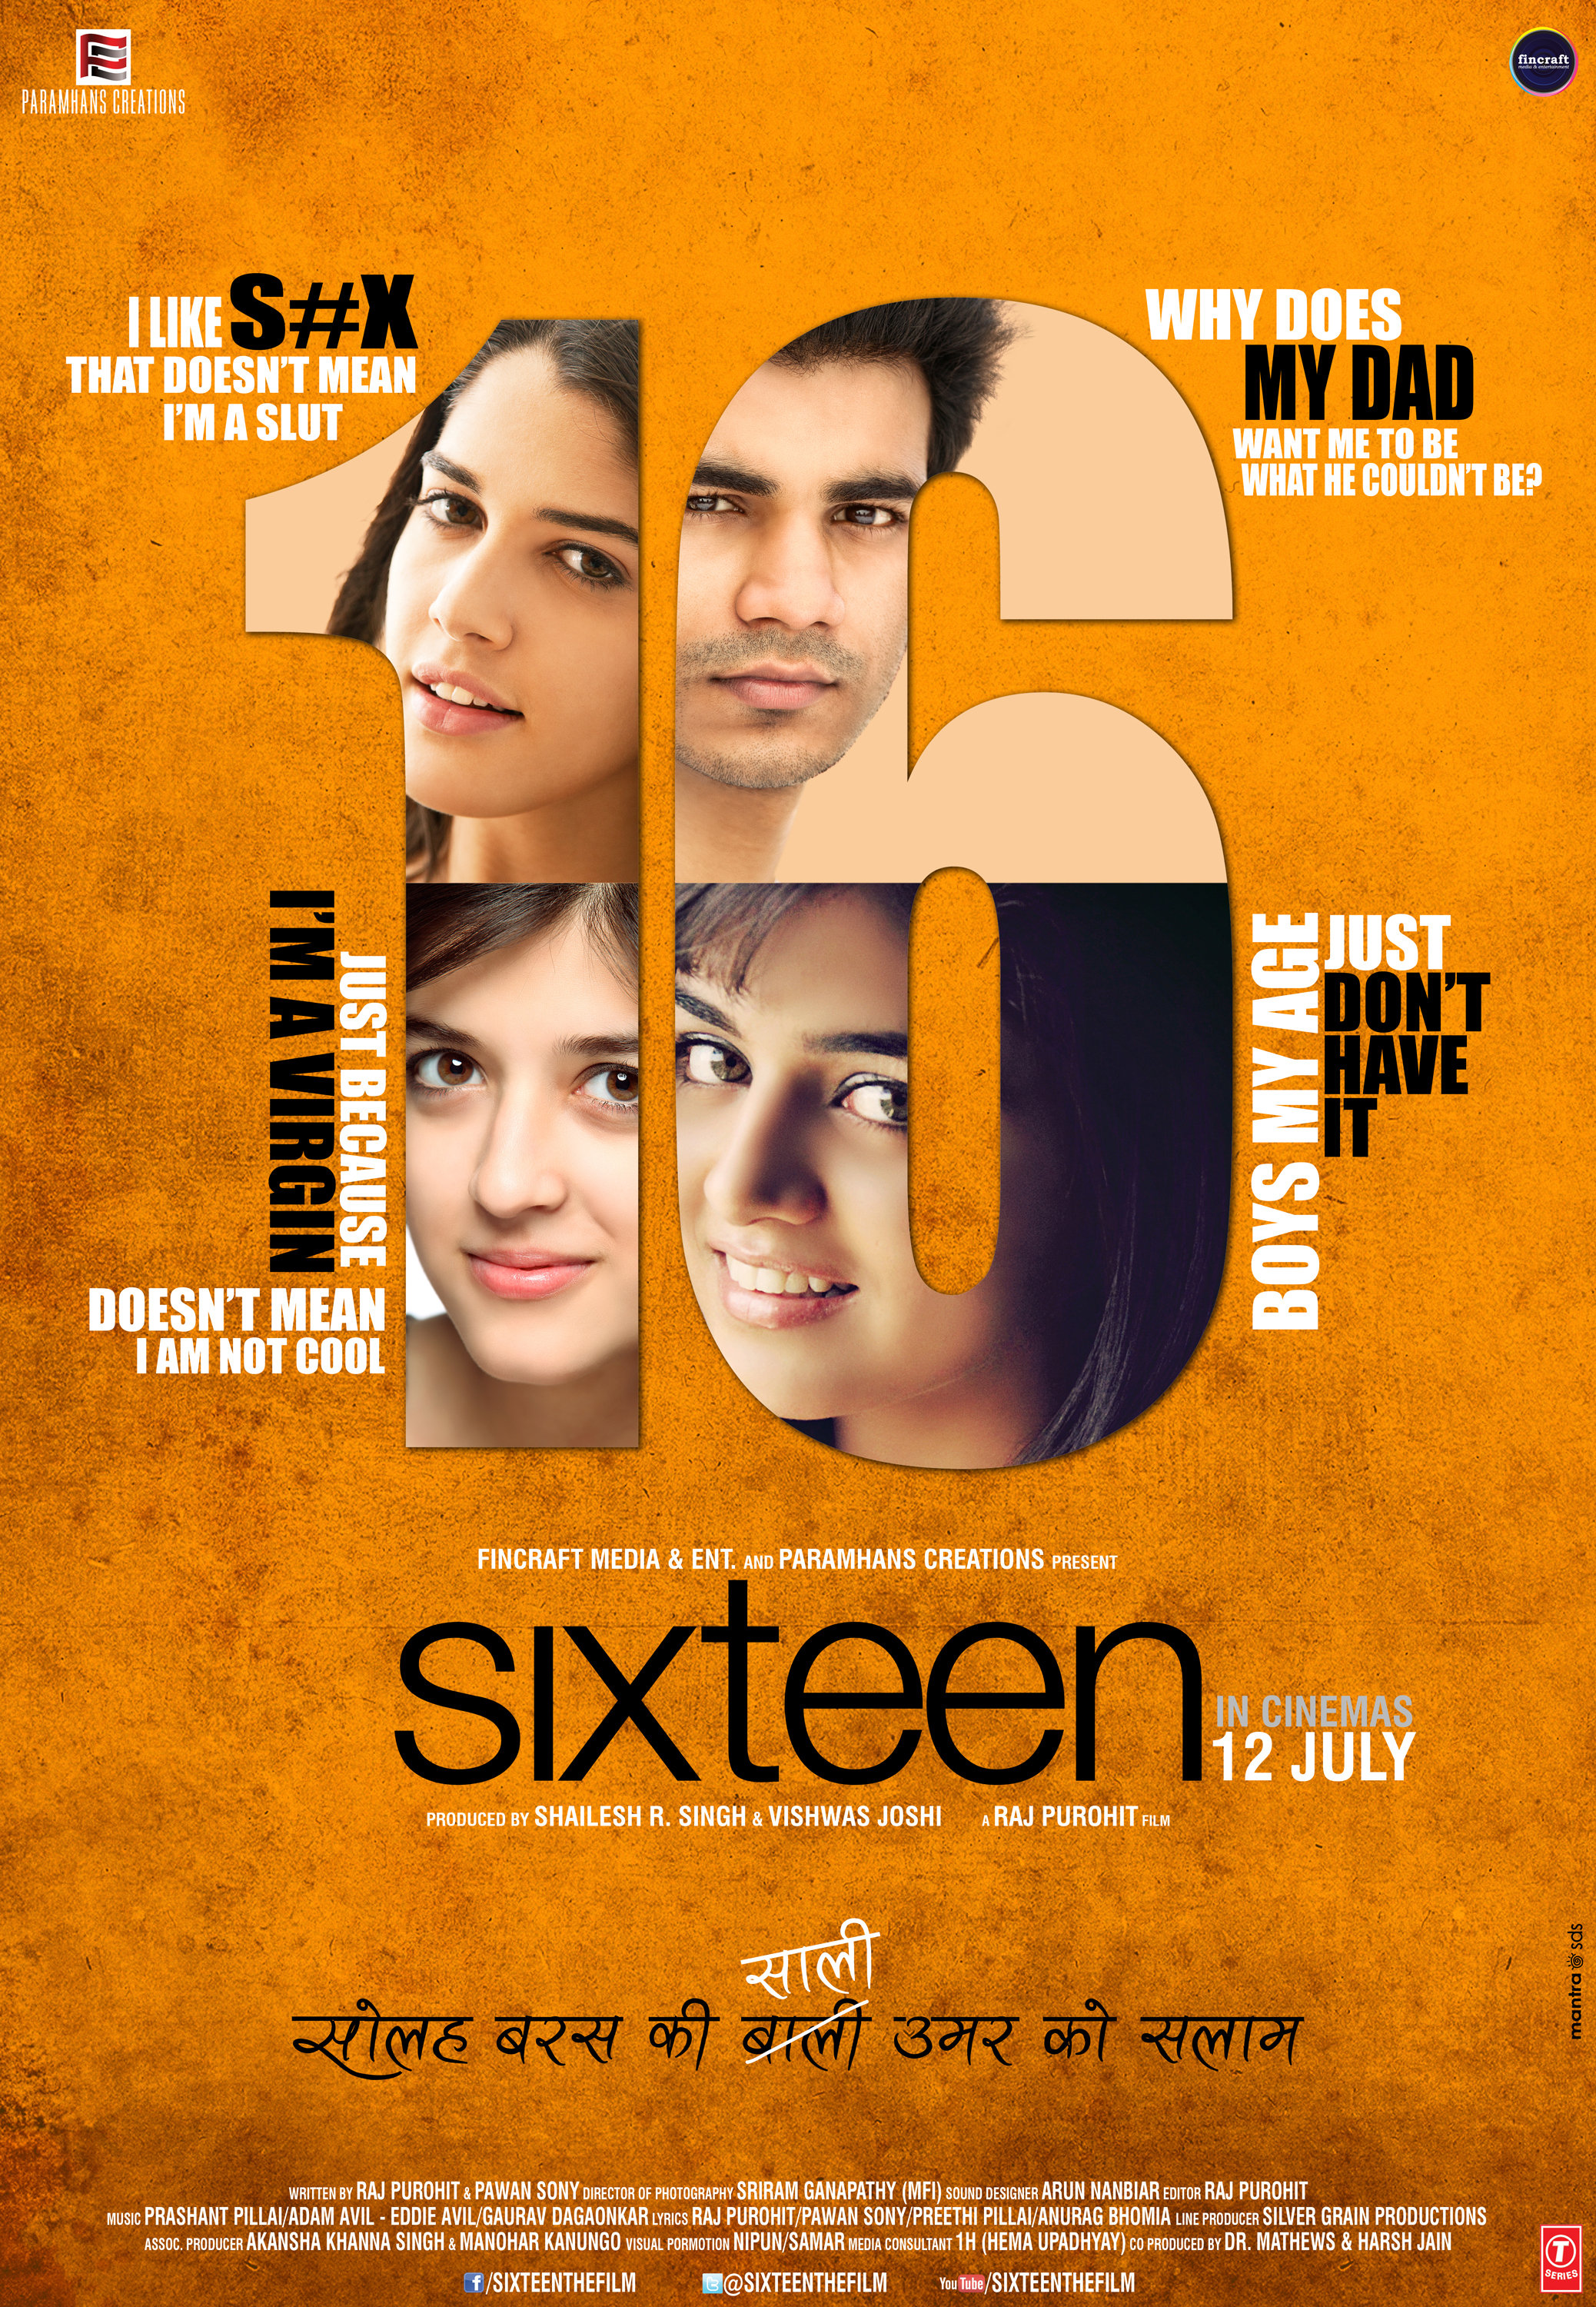 Wamiqa Gabbi, Mehak Manwani, Izabelle Leite, and Highphill Mathew in Sixteen (2013)